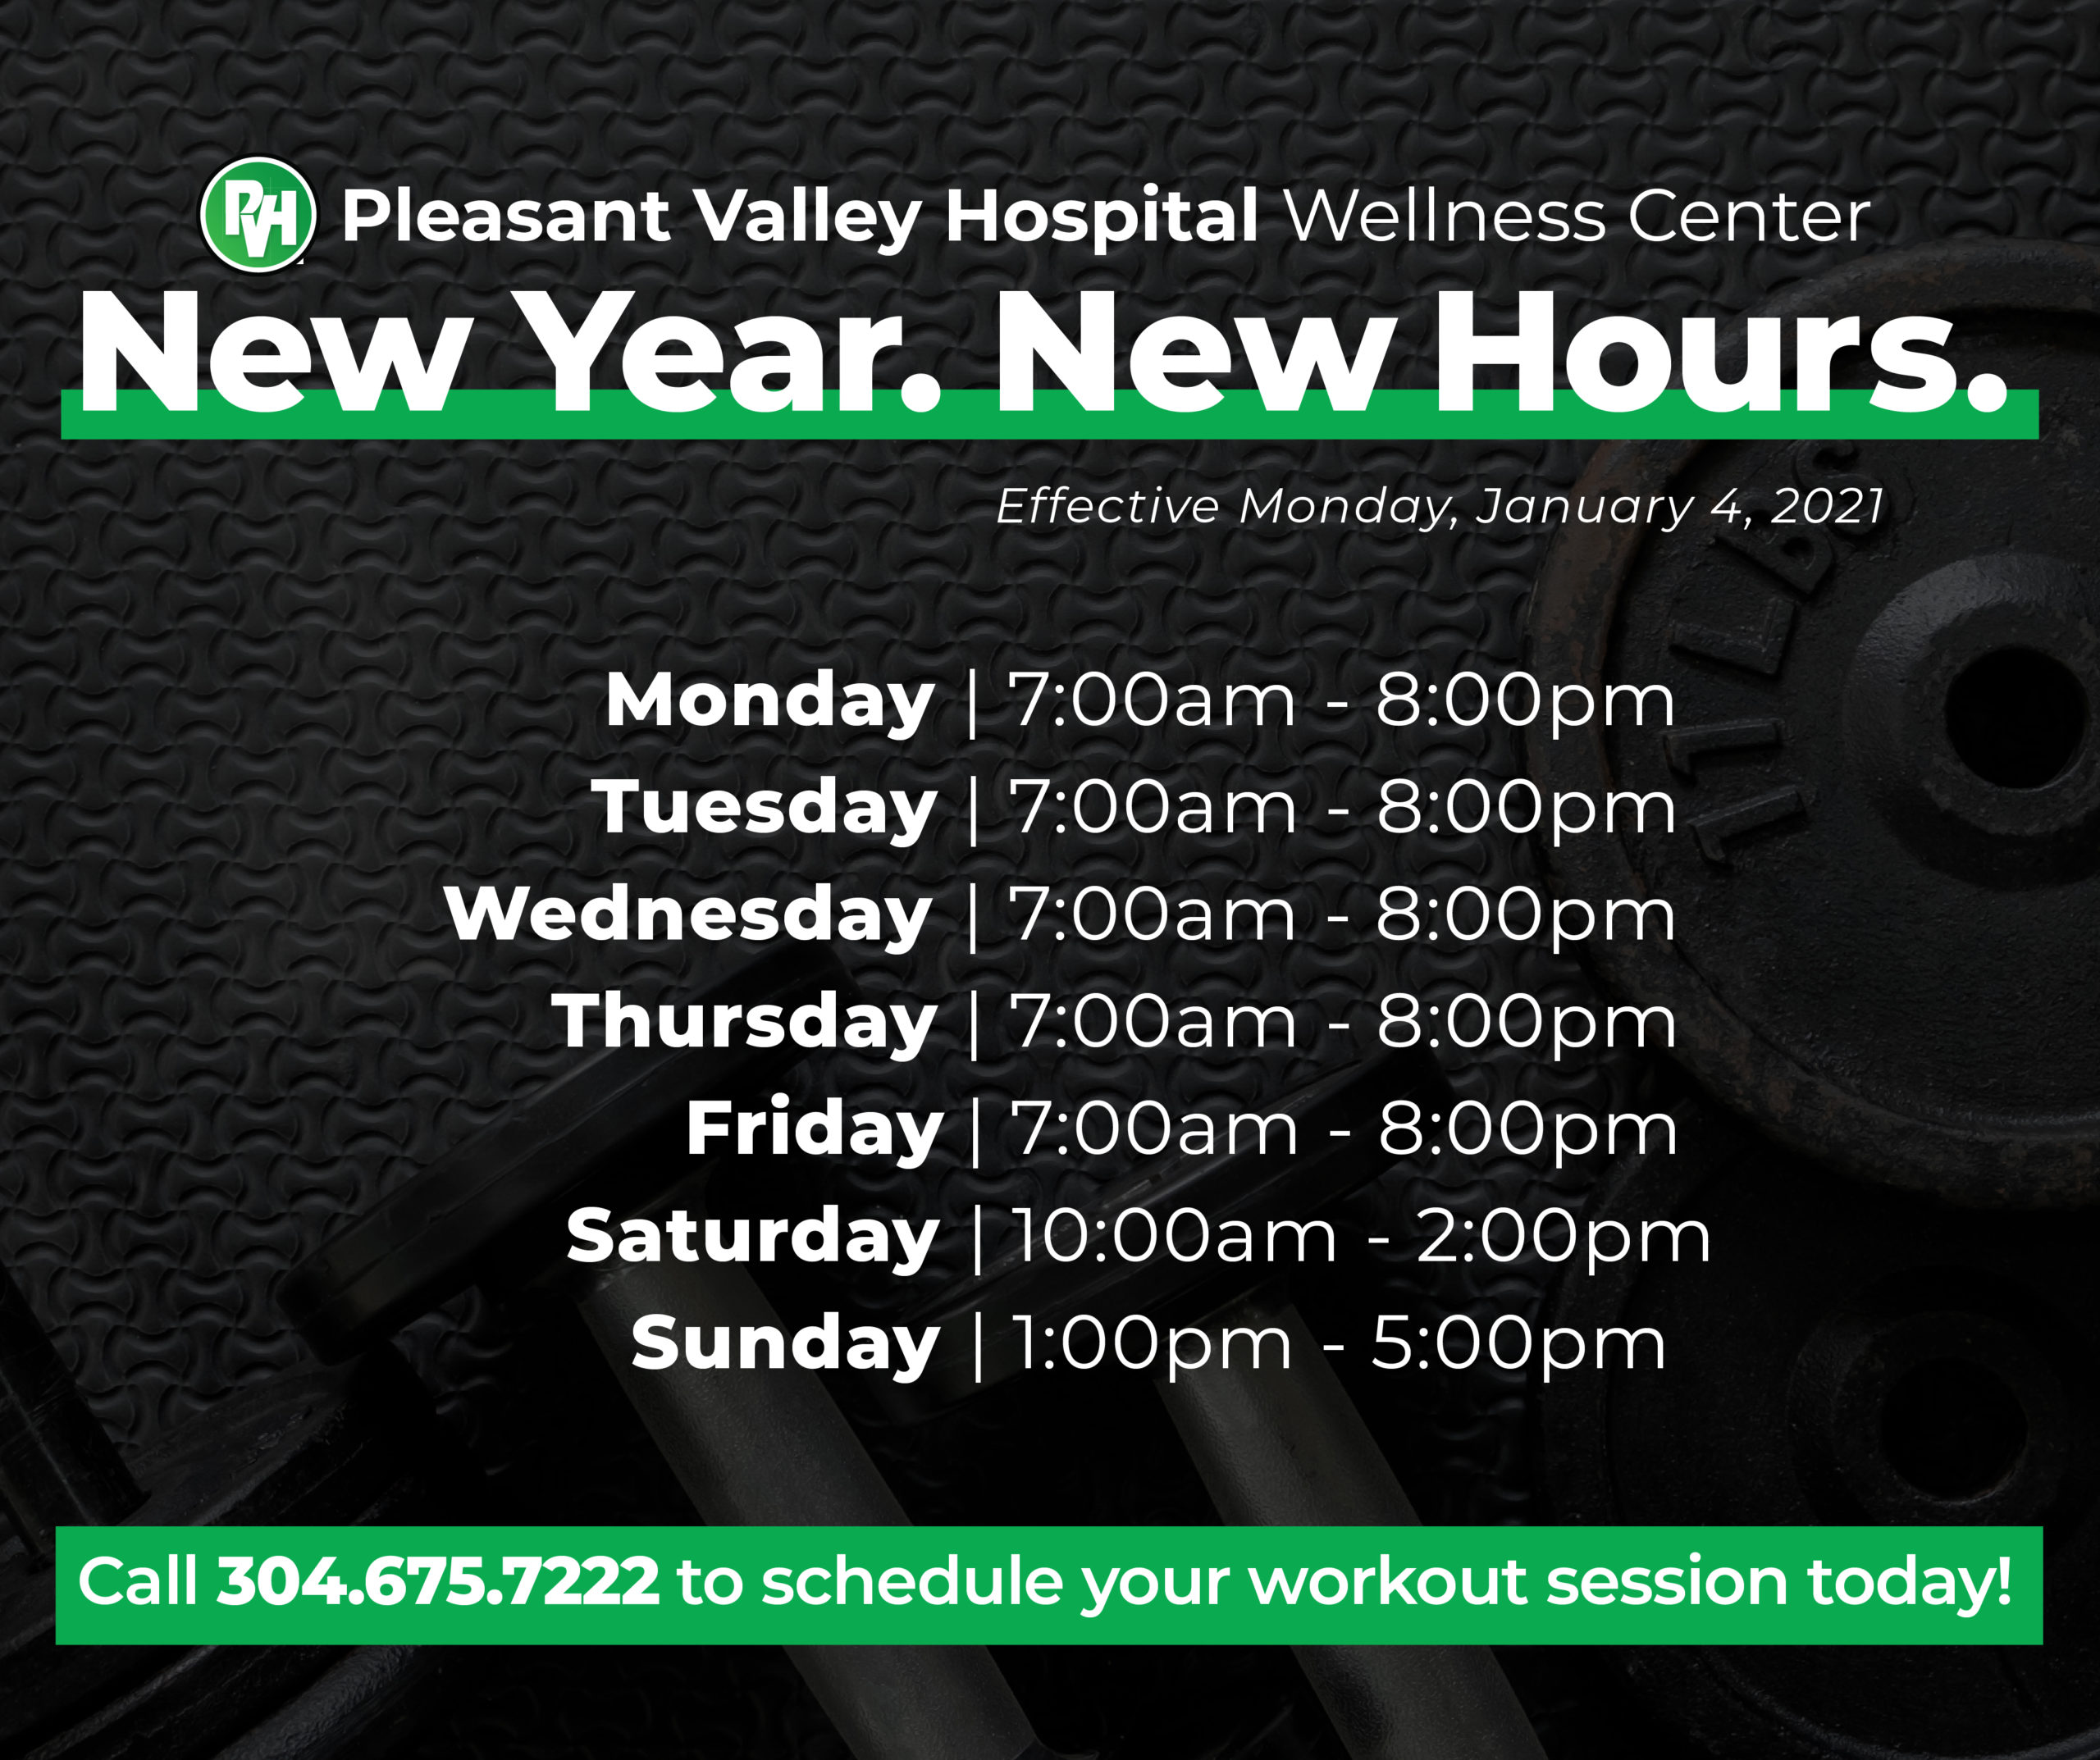 Pleasant Valley Hospital Wellness Center New Year New Hours Effective Monday, January 4, 2021 | Monday - Friday 7am-8pm Saturday 10am - 2pm Sunday 1pm - 5pm | Call 304.675.7222 to schedule your workout session today!